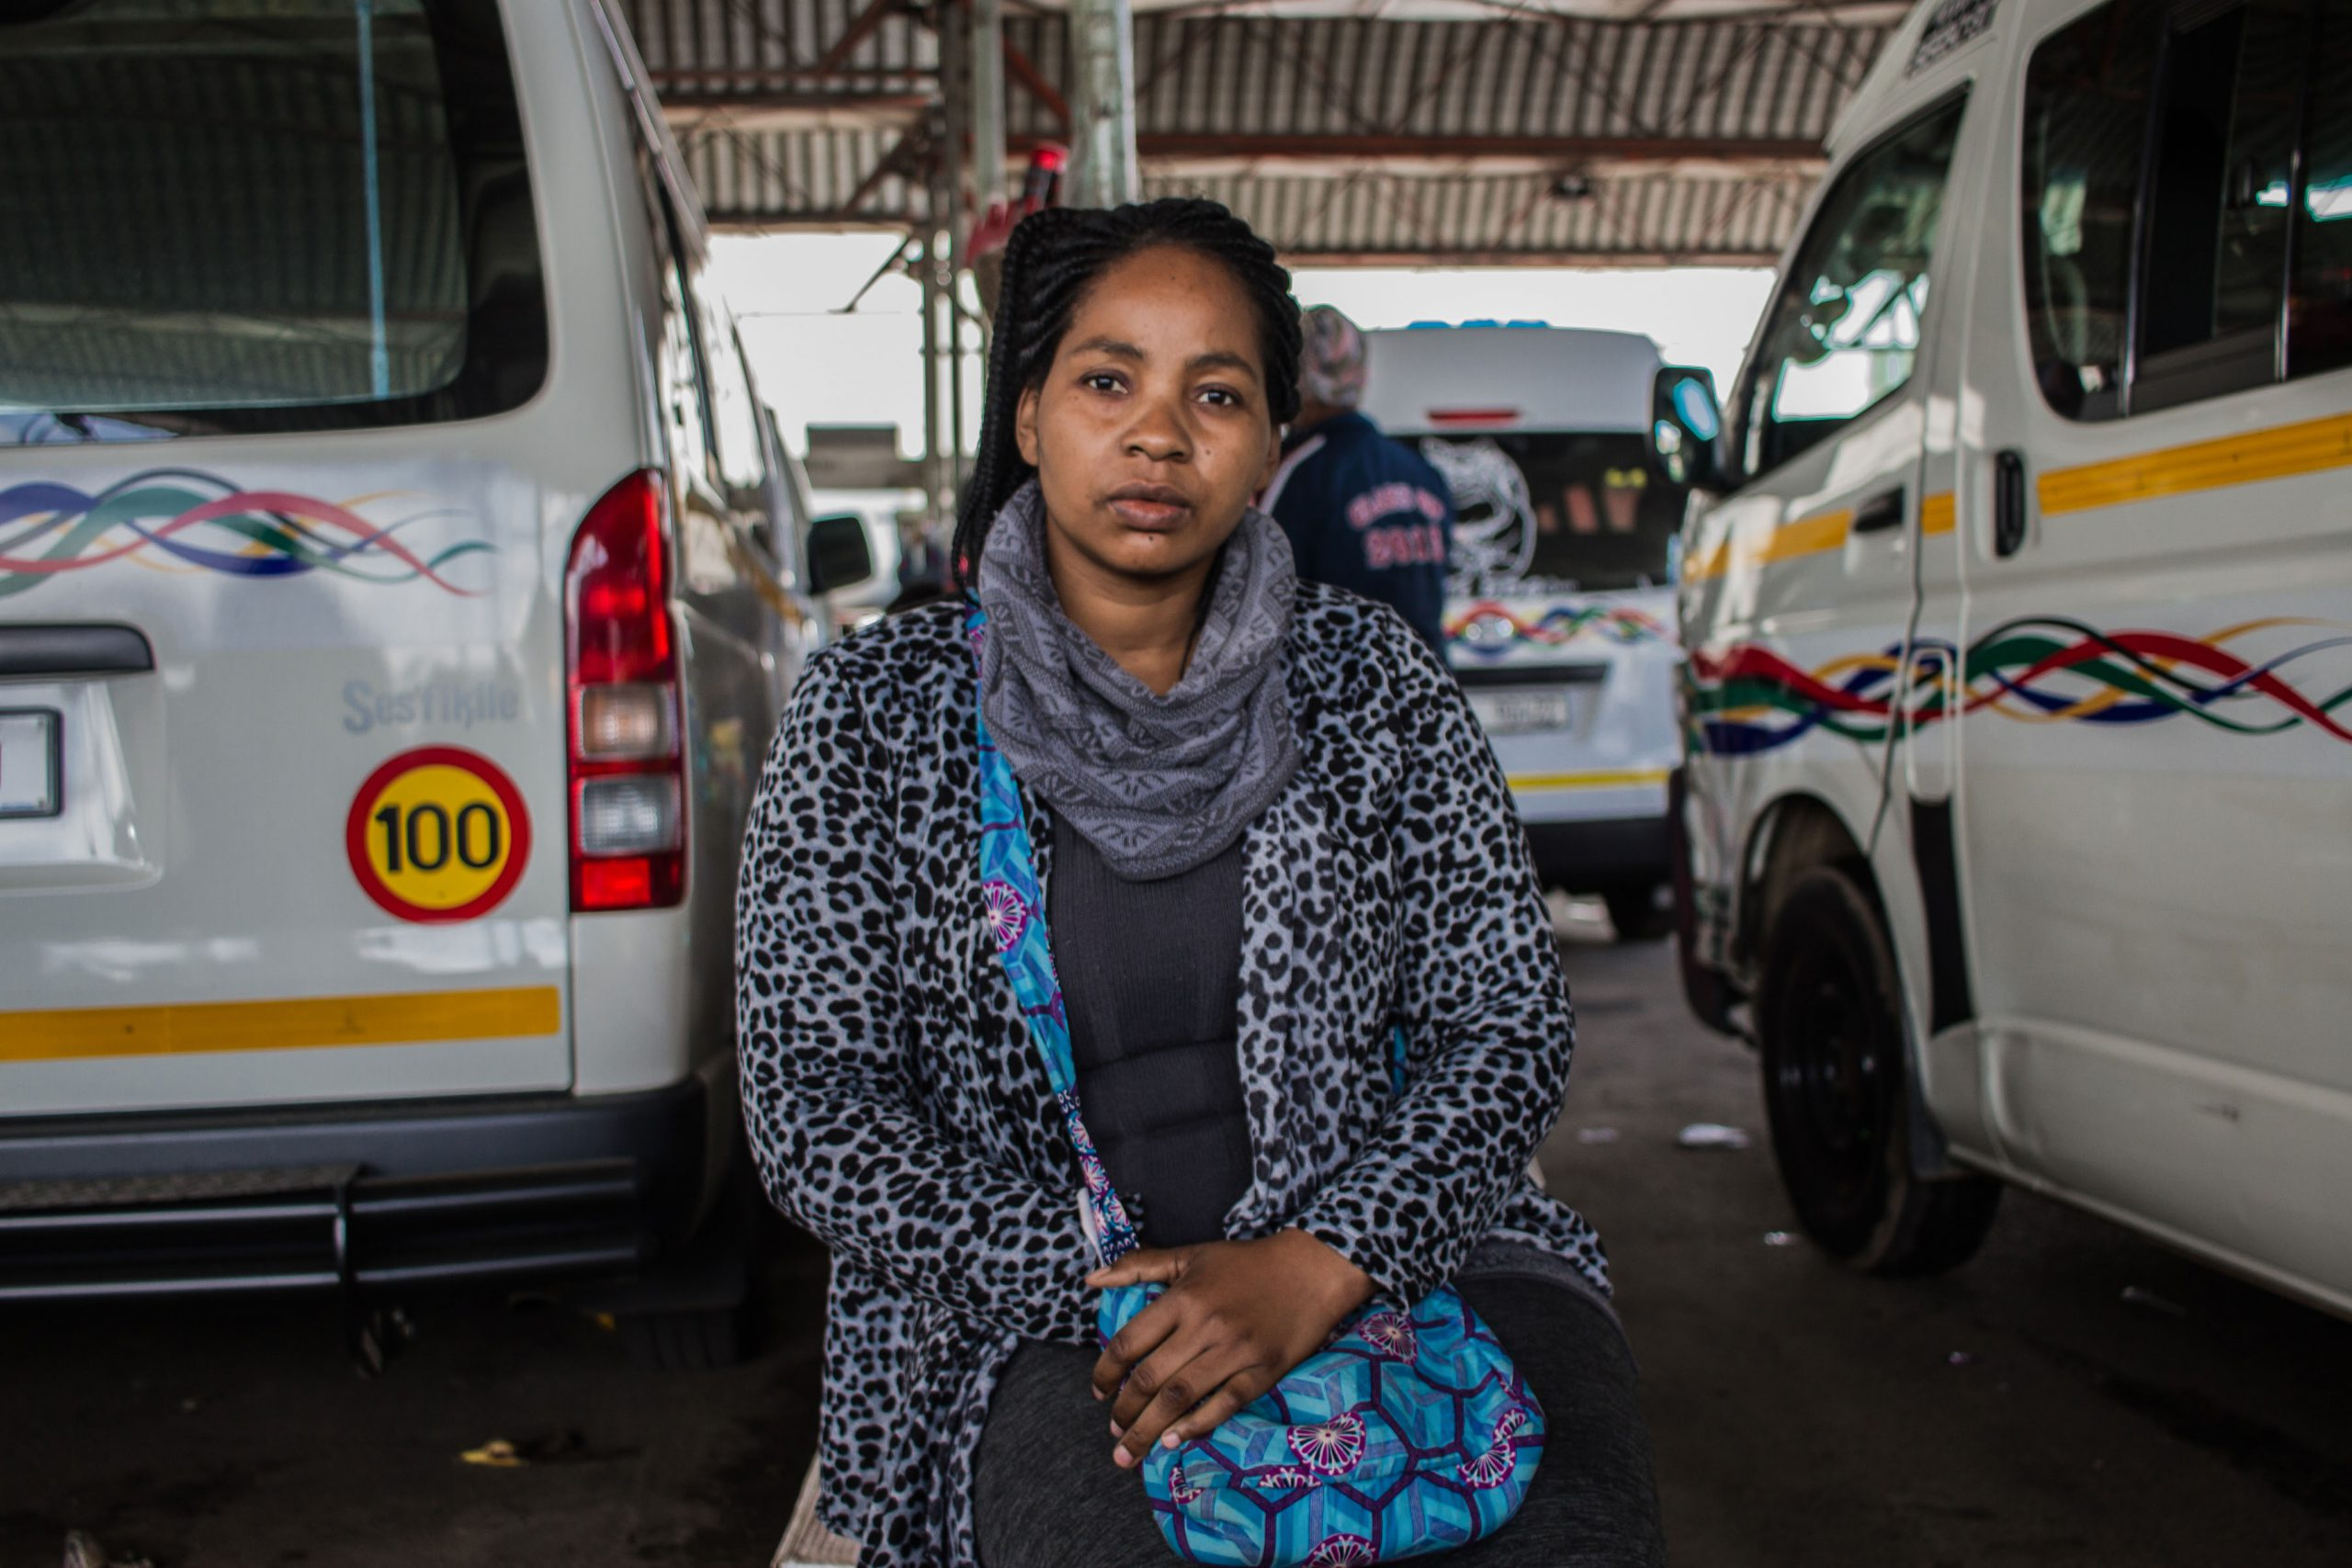 18 November 2019: Vendors are a common sight at taxi ranks. Samantha Manafi says her success depends on maintaining a good relationship with both commuters and drivers.